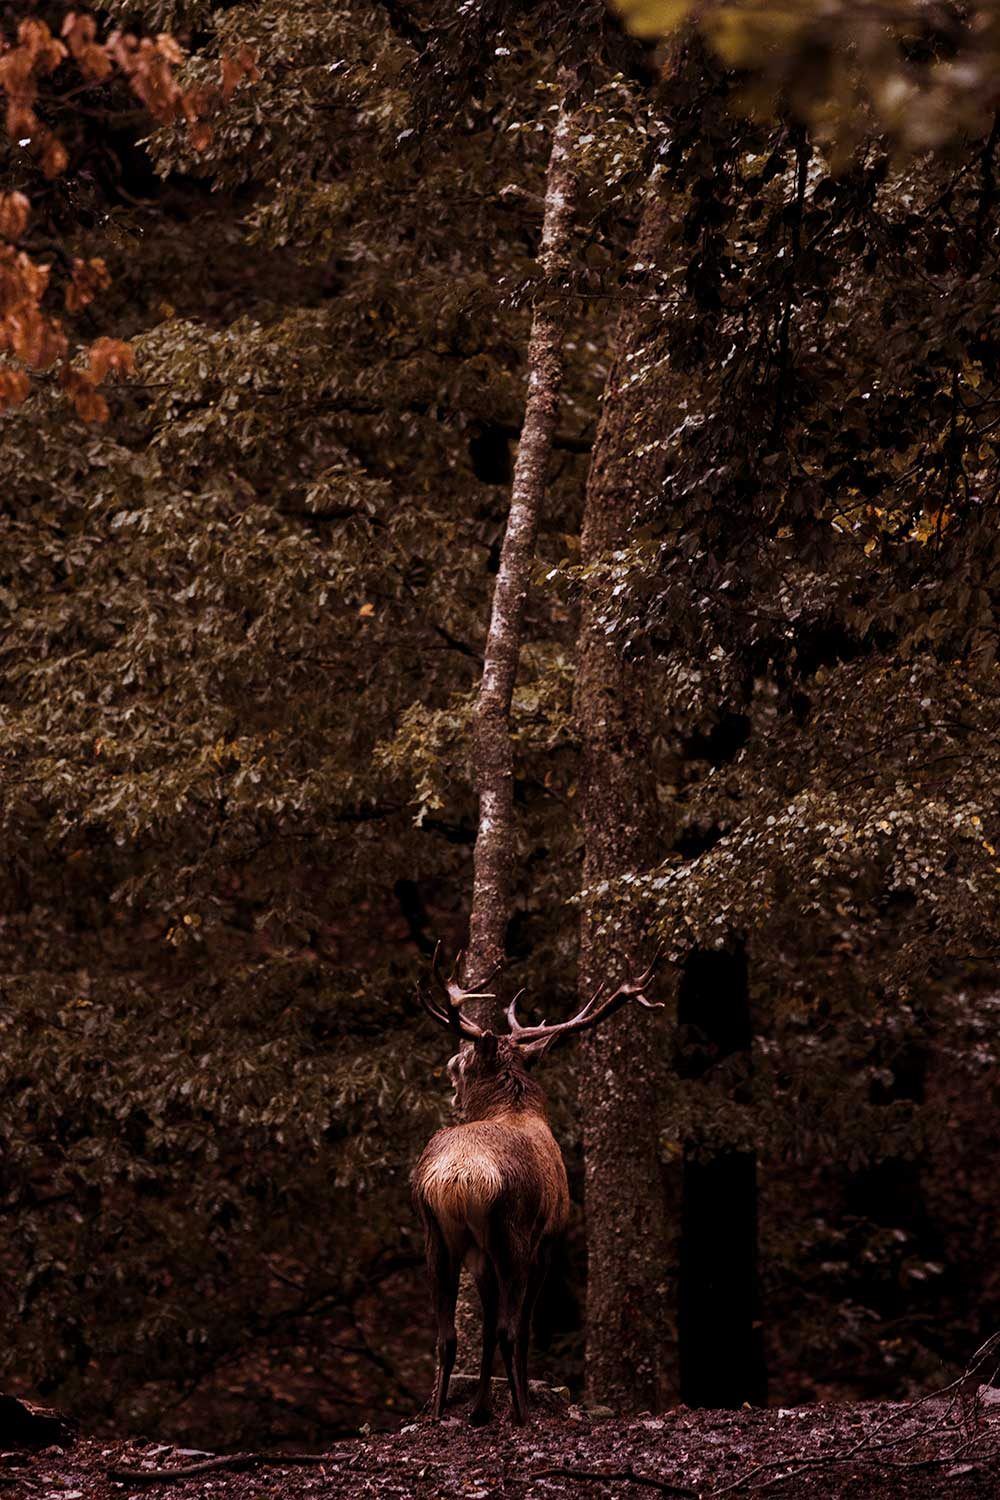 Imposing stag empty their lungs with primal cries that resonate through the Ardennes forests